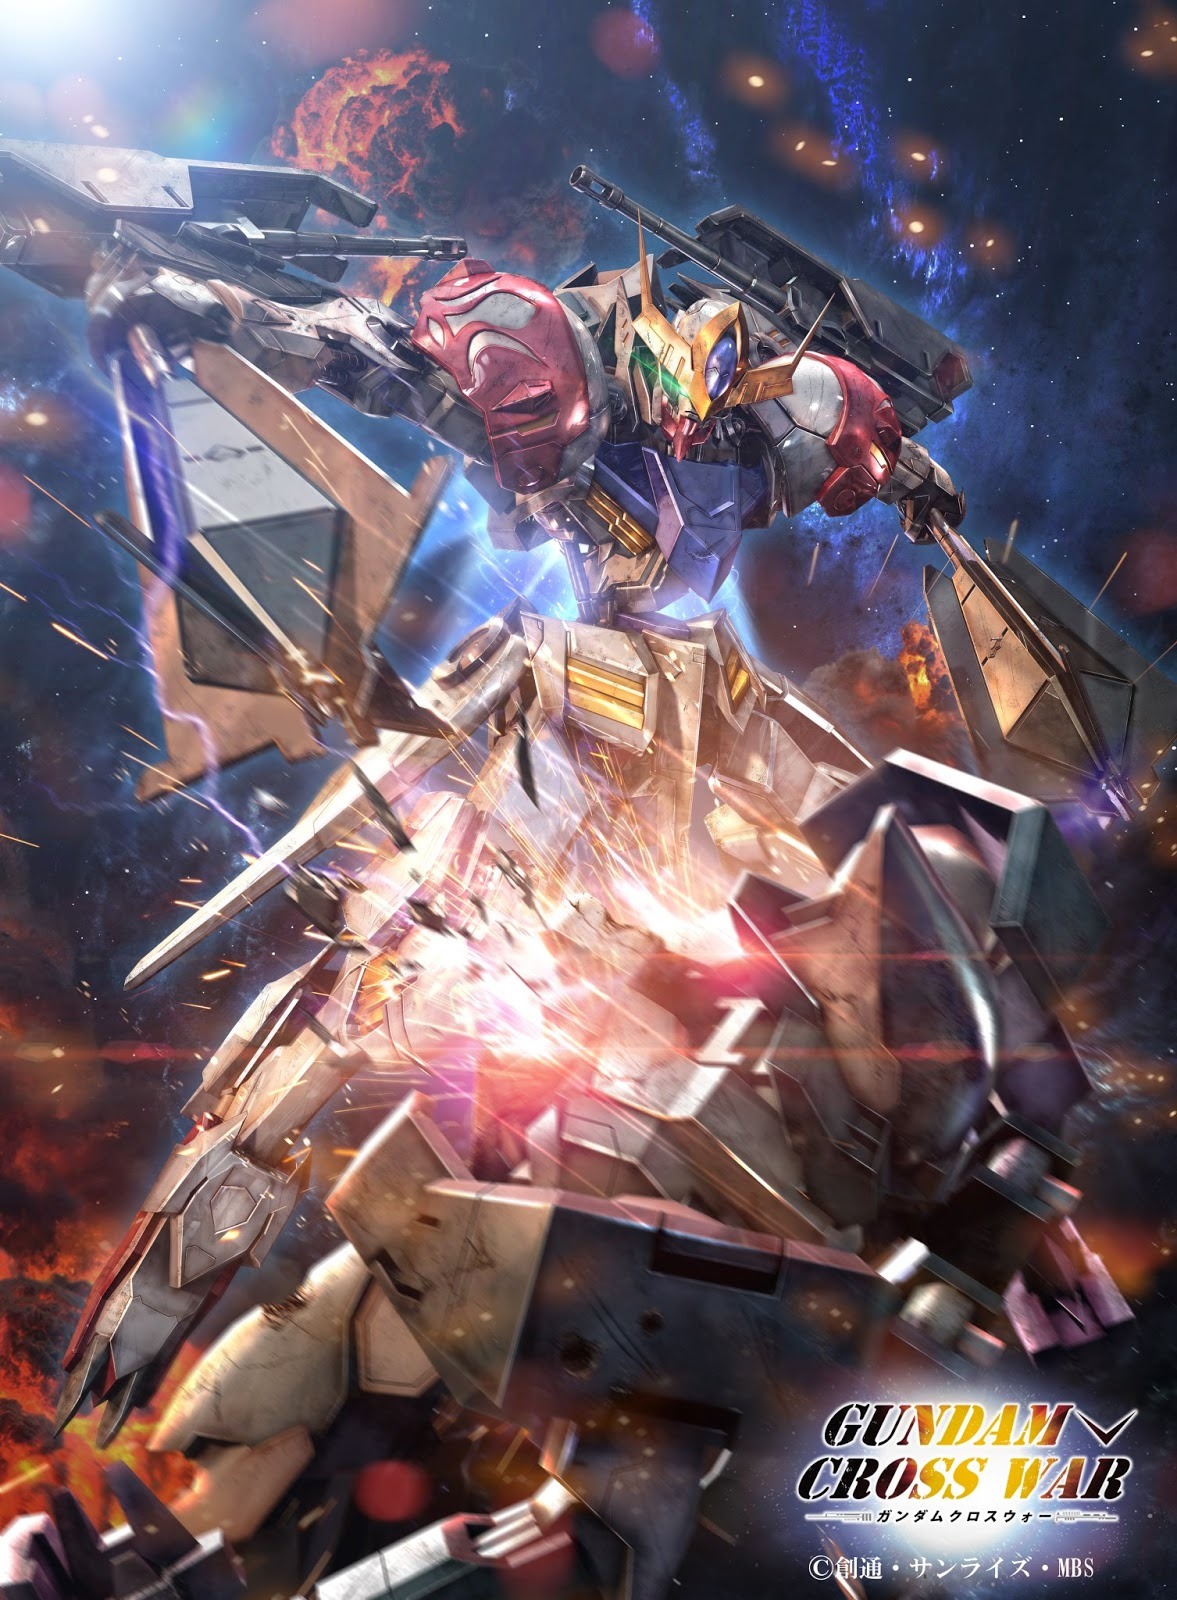 Gundam Cross War Mobile Phone Size Wallpapers